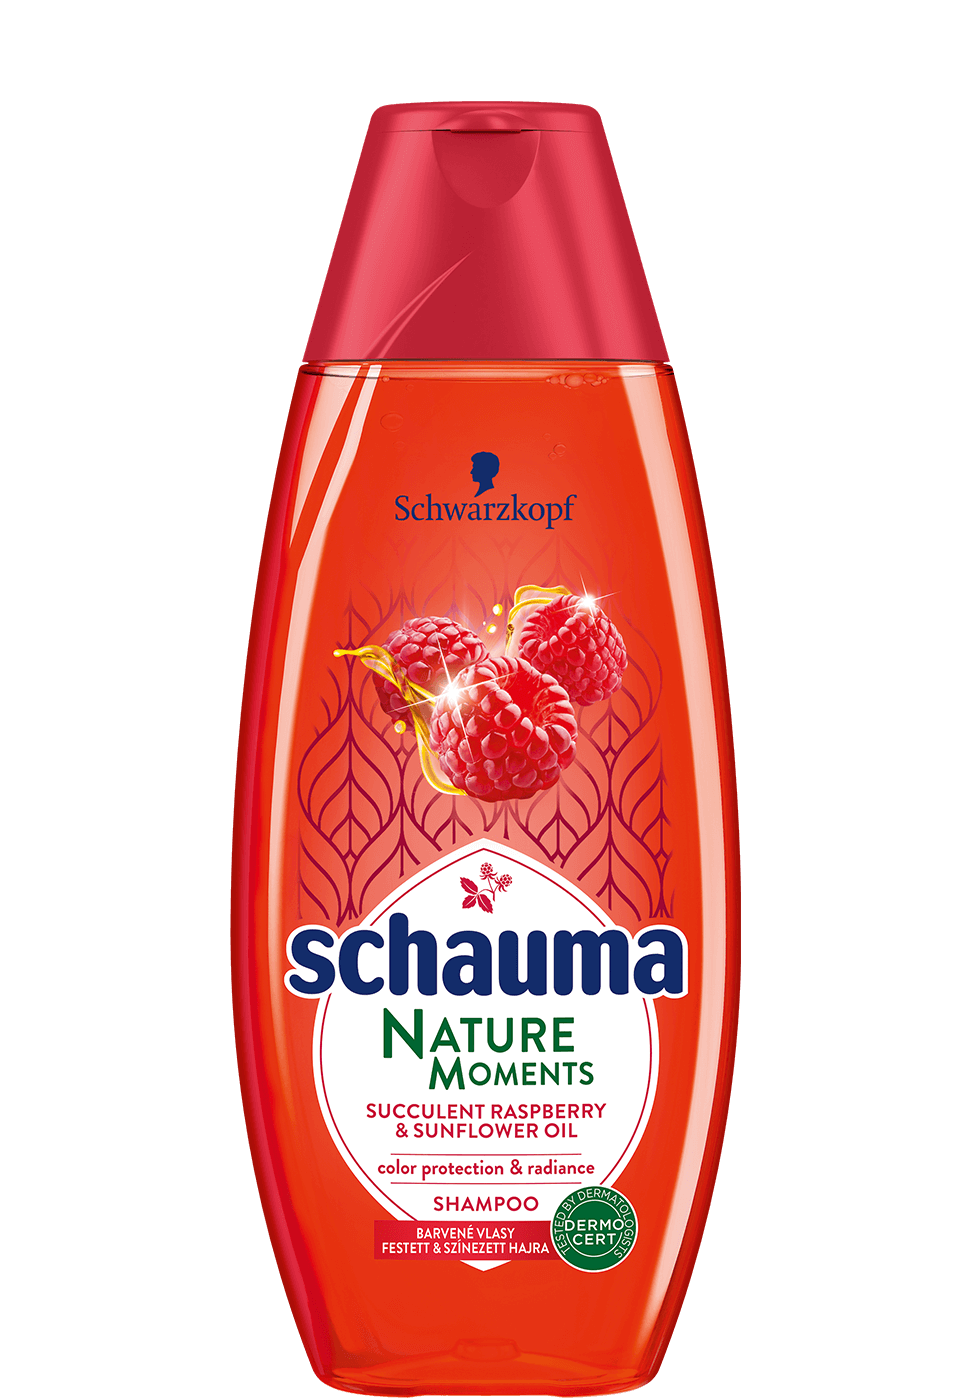 schauma_com_nature_moments_succulent_raspberry_shampoo_970x1400